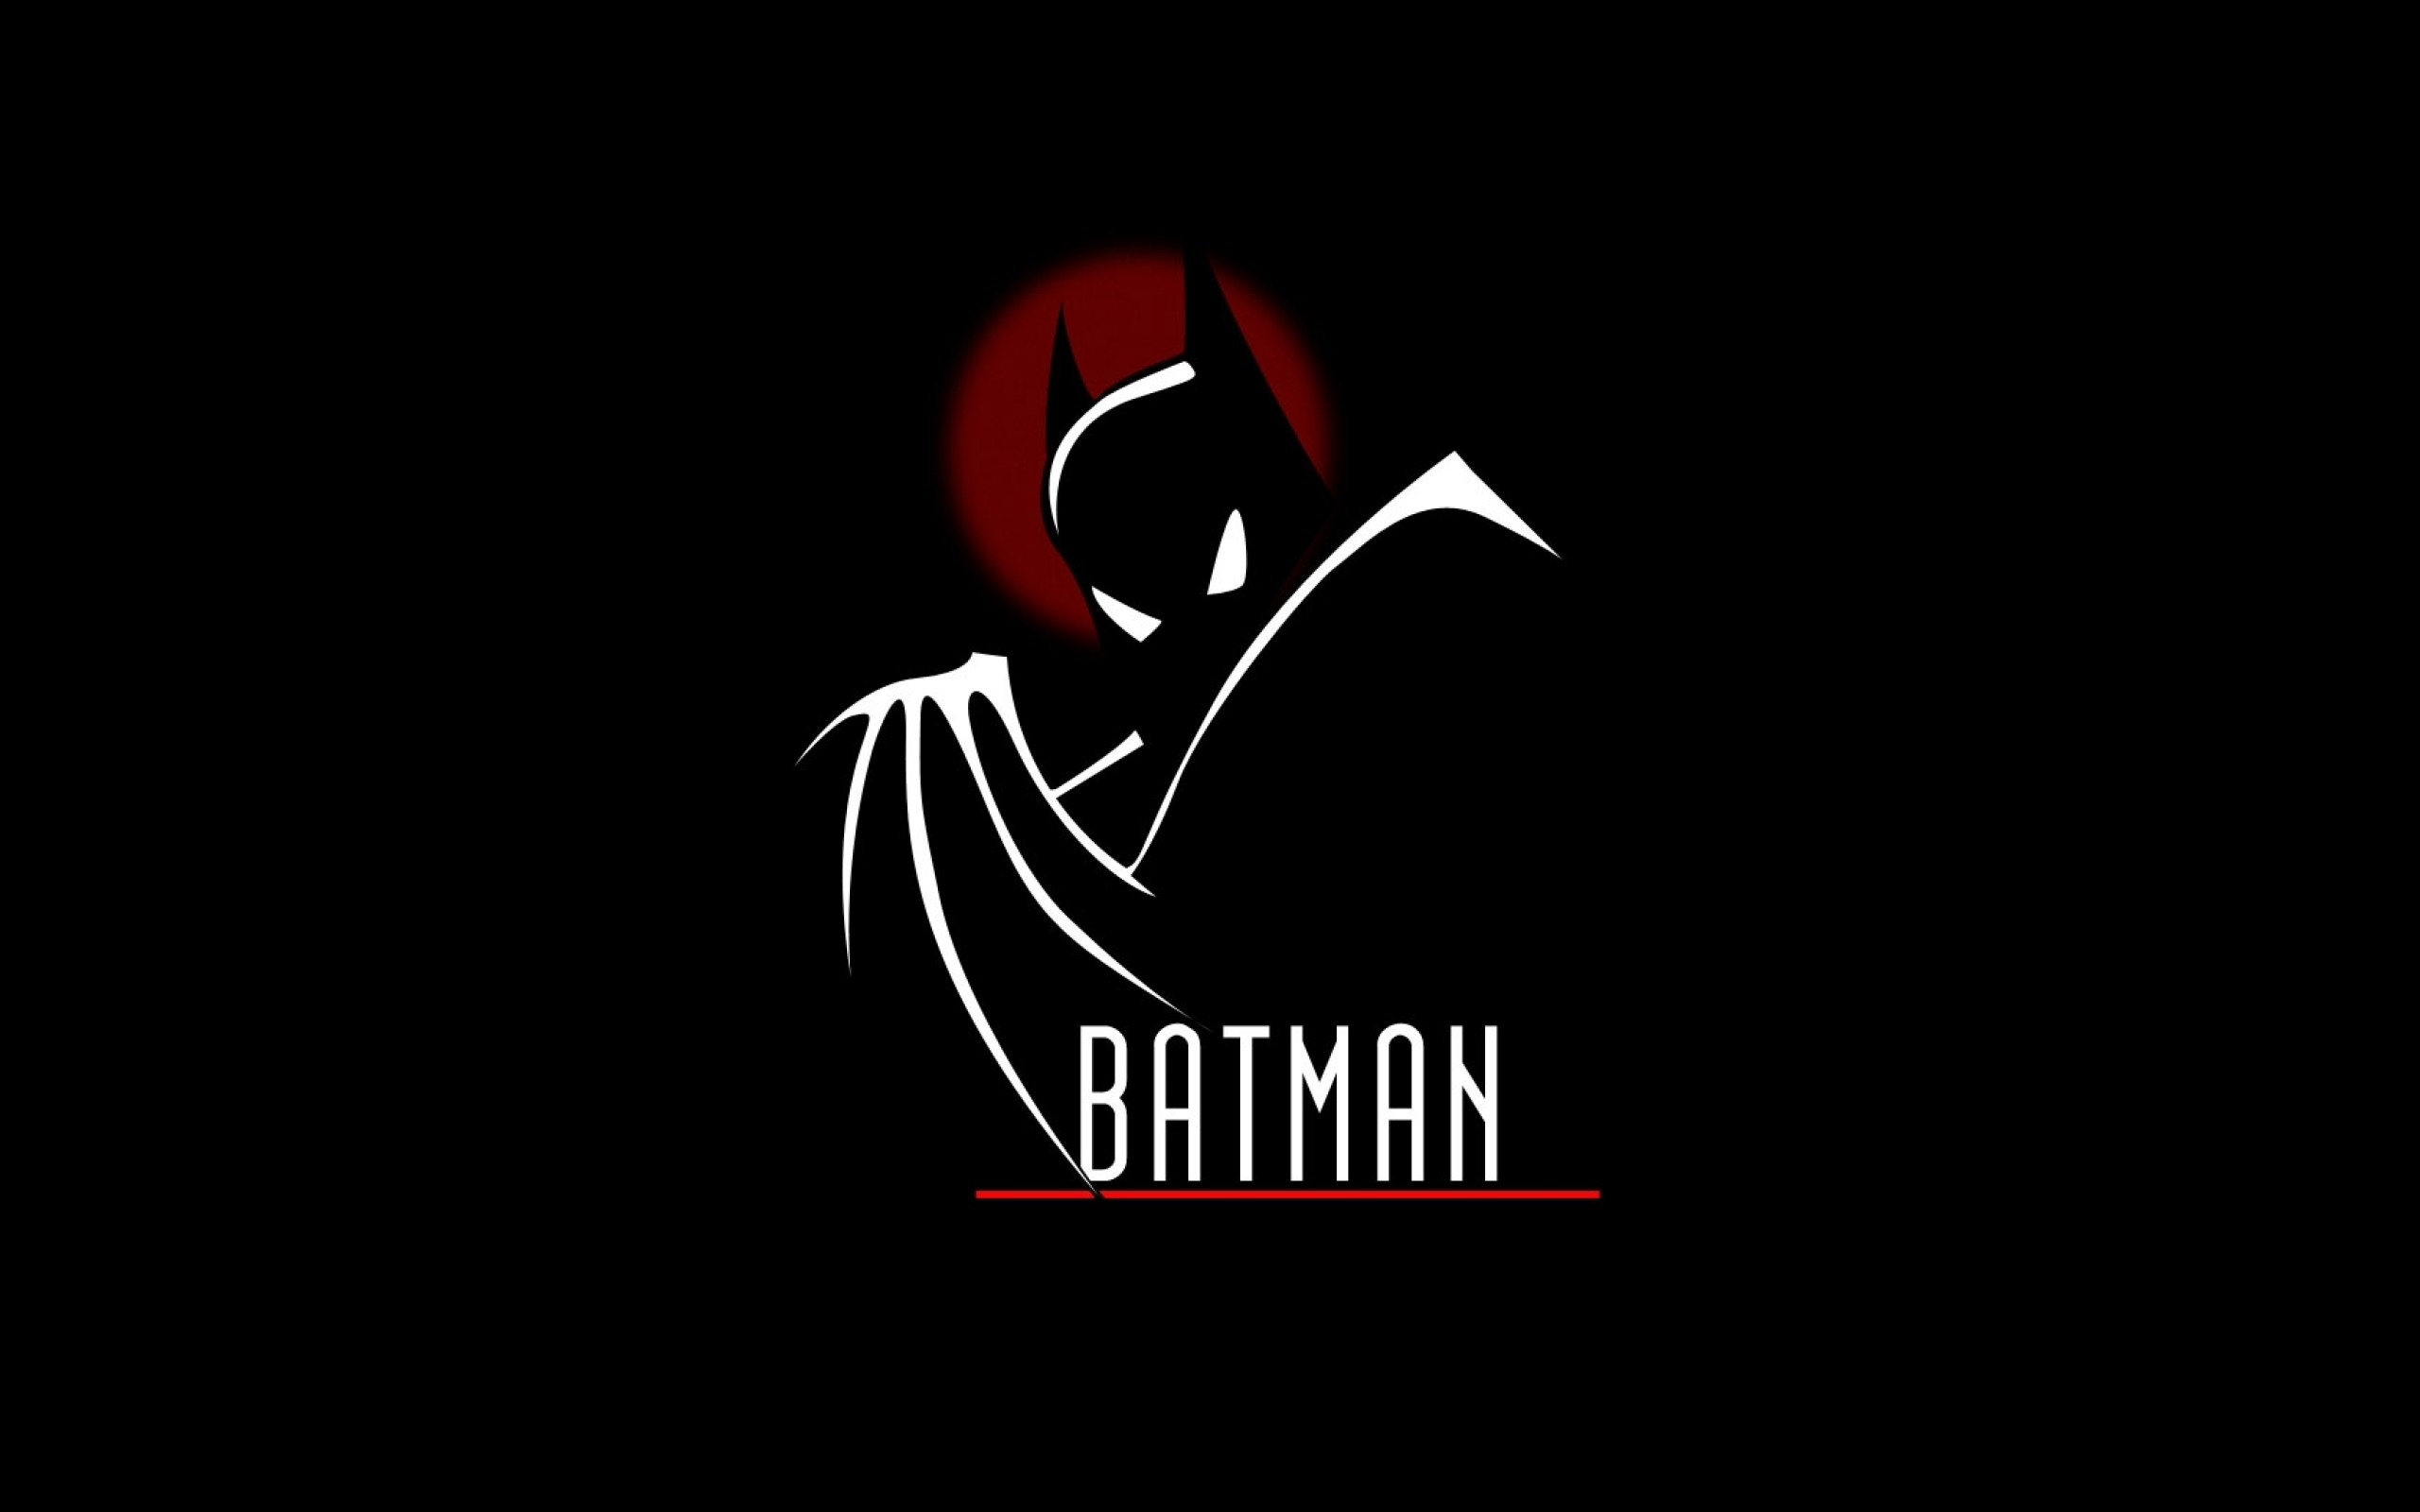 2560x1600 Batman Animated Series wallpaper 239751